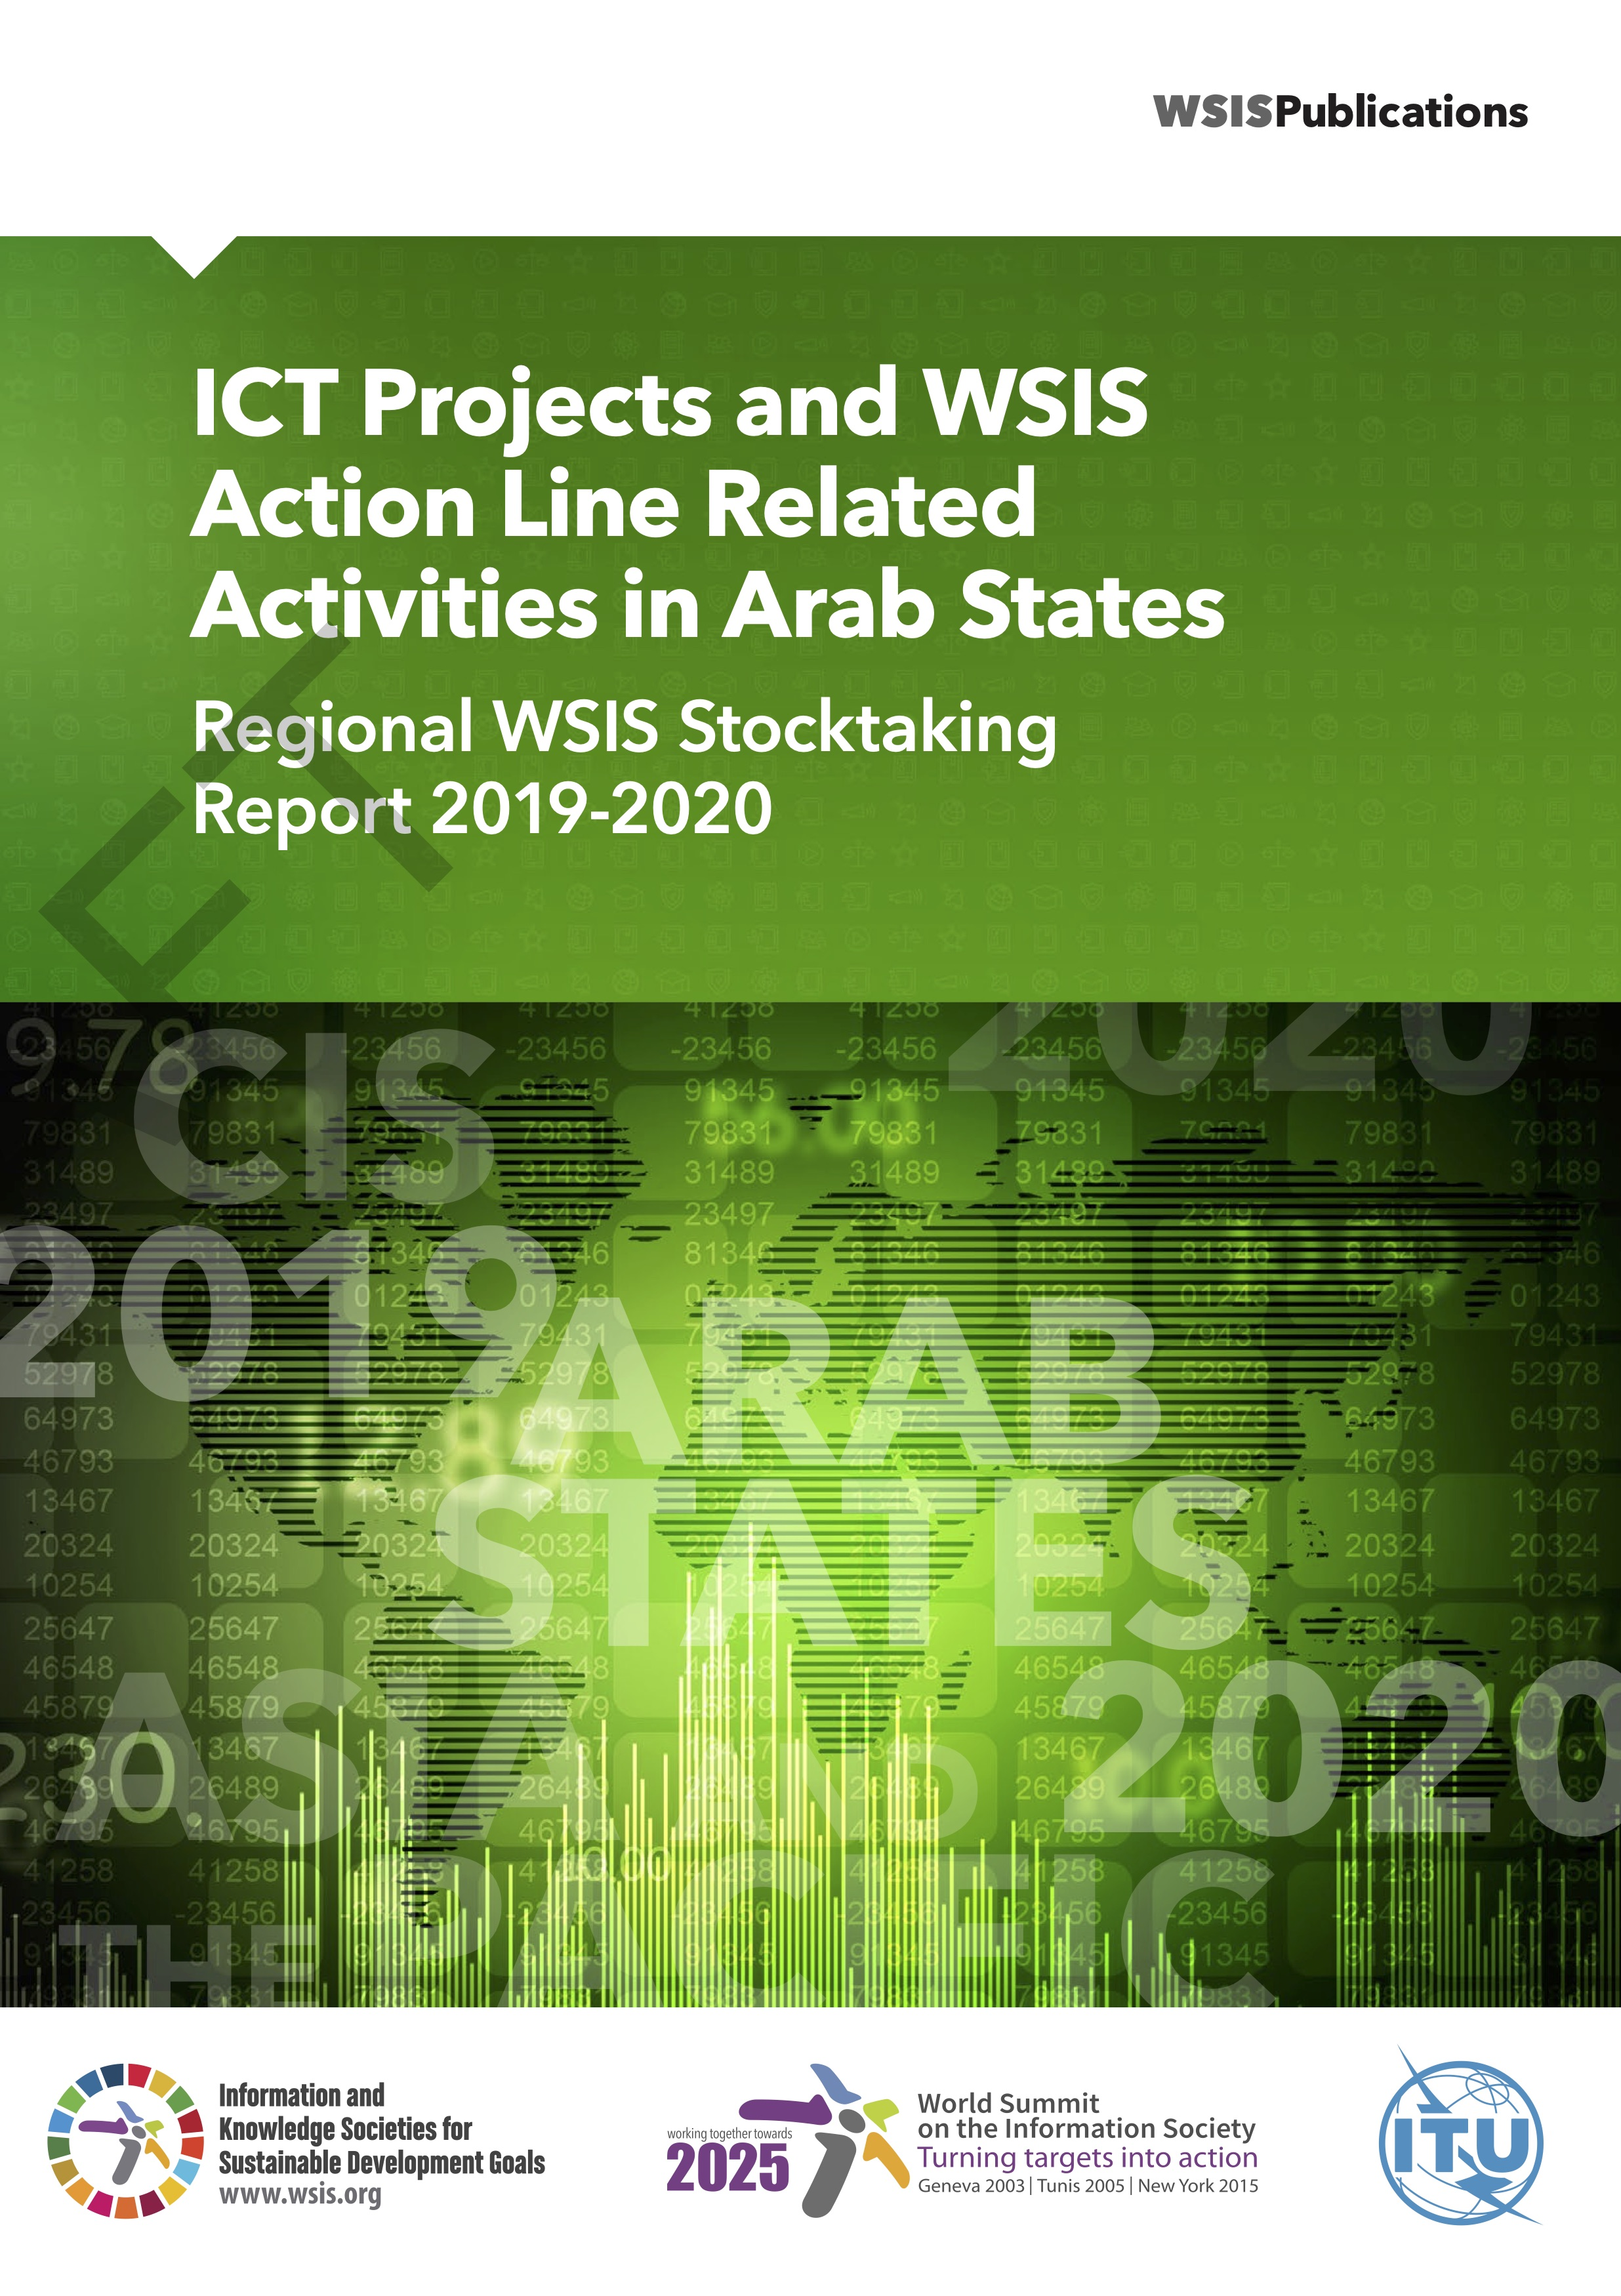 Regional WSIS Stocktaking Report 2019-2020 — Arab States